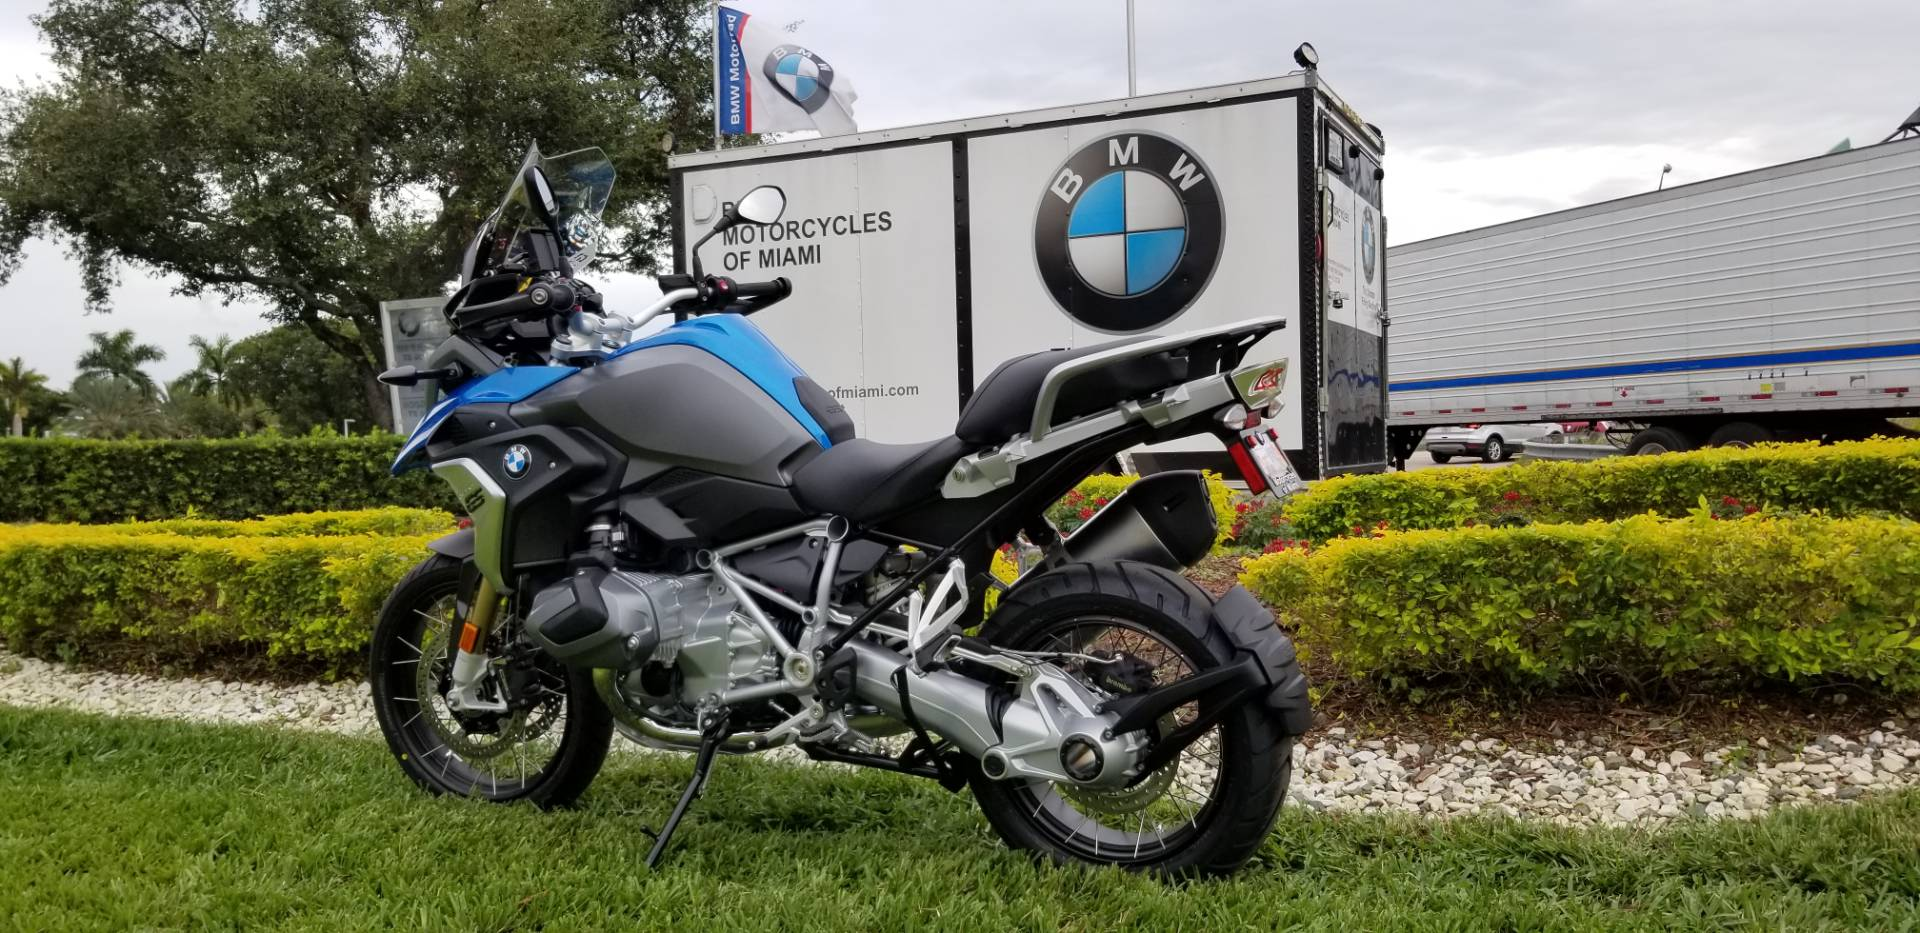 New 2019 BMW R 1250 GS for sale, BMW for sale R 1250GS, BMW Motorcycle R1250GS, new BMW 1250GS, R1250GS, BMW. BMW Motorcycles of Miami, Motorcycles of Miami - Photo 17